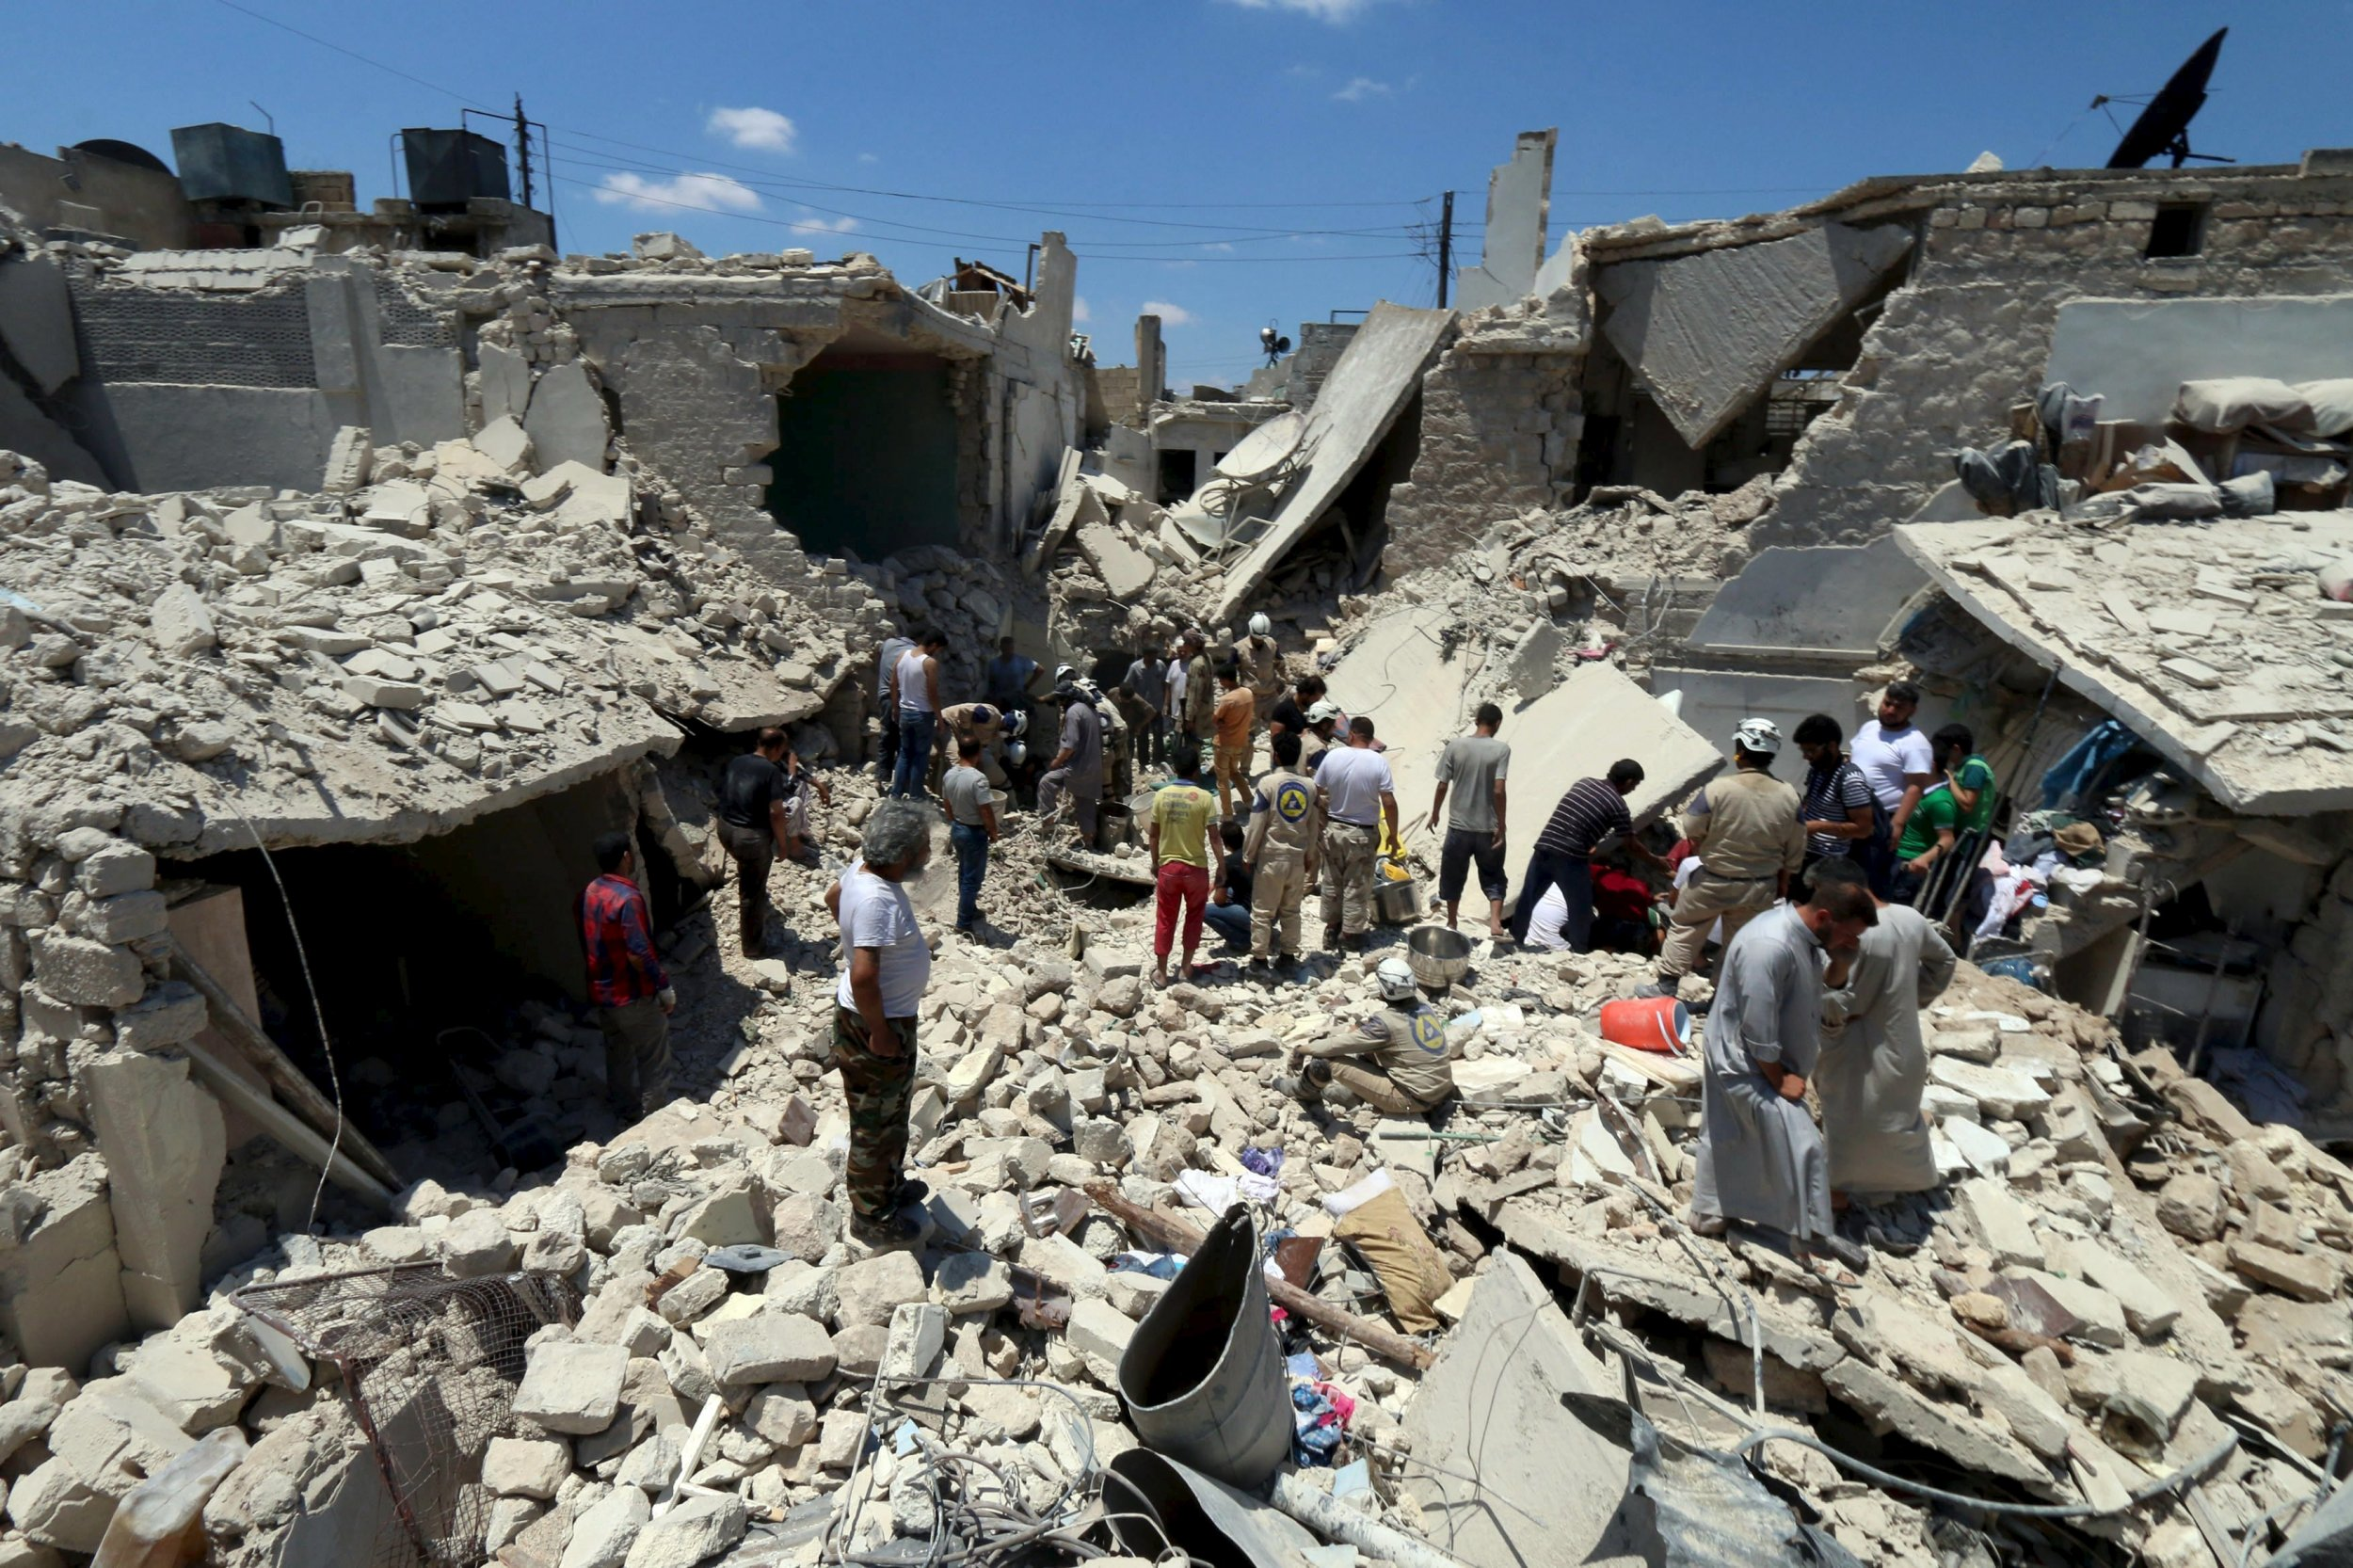 2015-06-21T131116Z_1405909857_GF10000135044_RTRMADP_3_MIDEAST-CRISIS-SYRIA